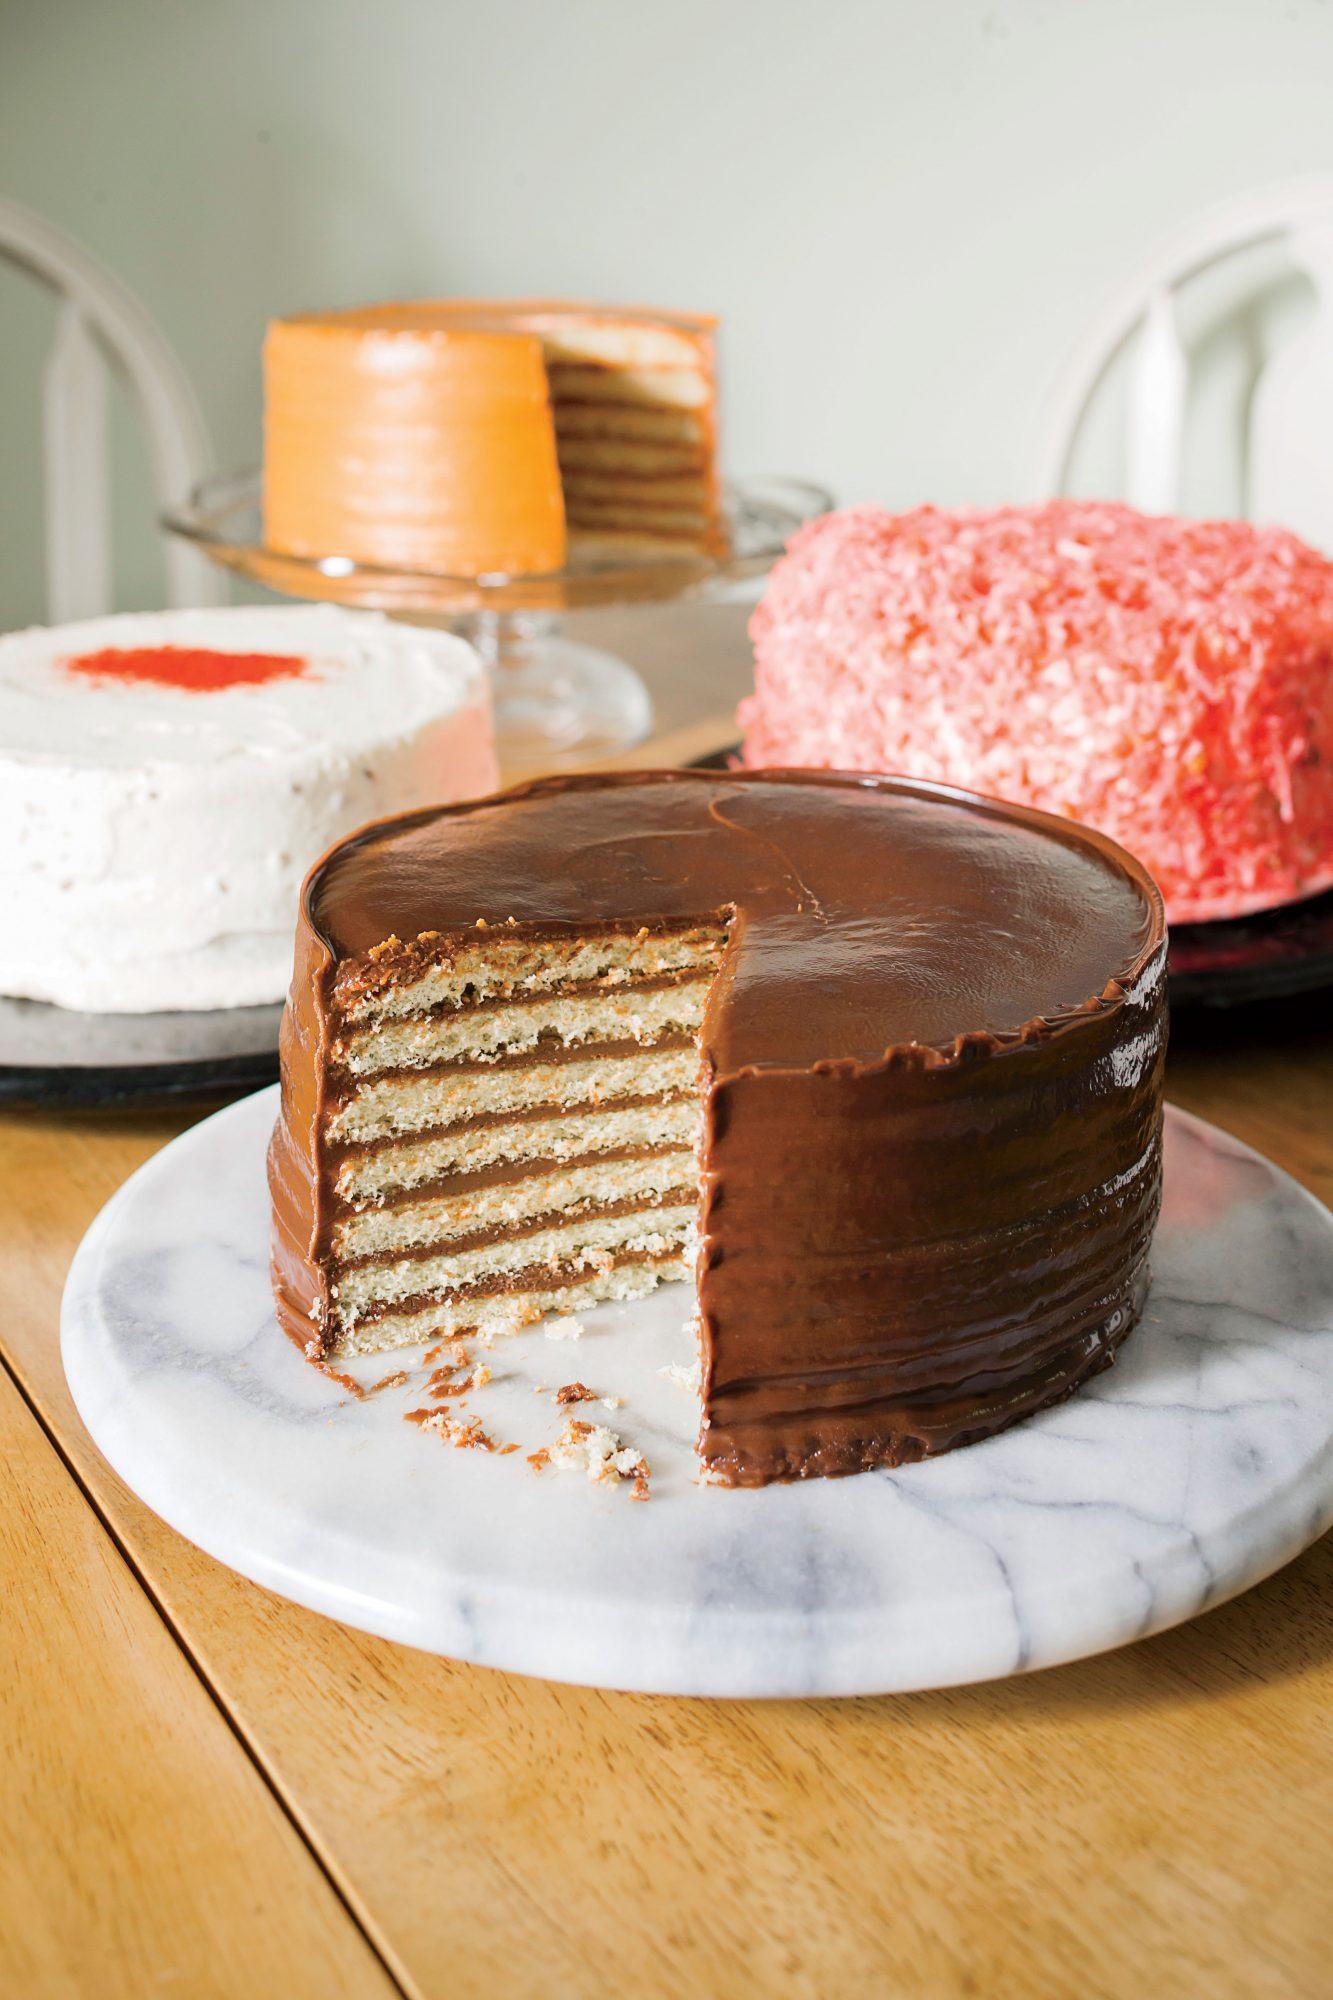 Assortment of Cakes from Dean's Cake House